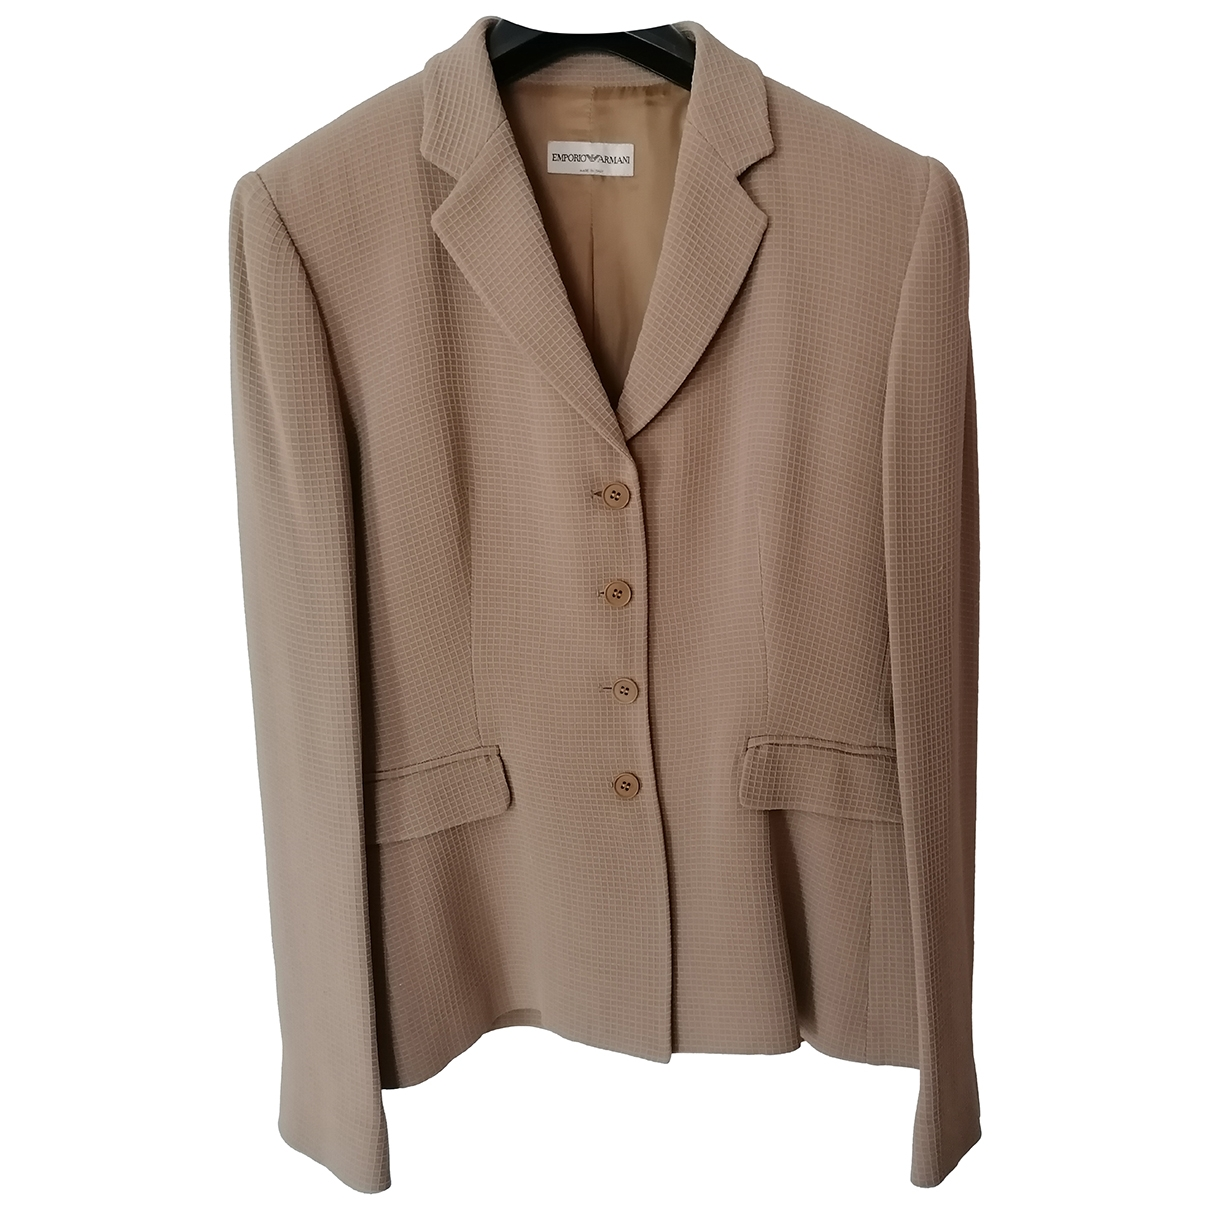 Emporio Armani \N Beige jacket for Women 44 IT